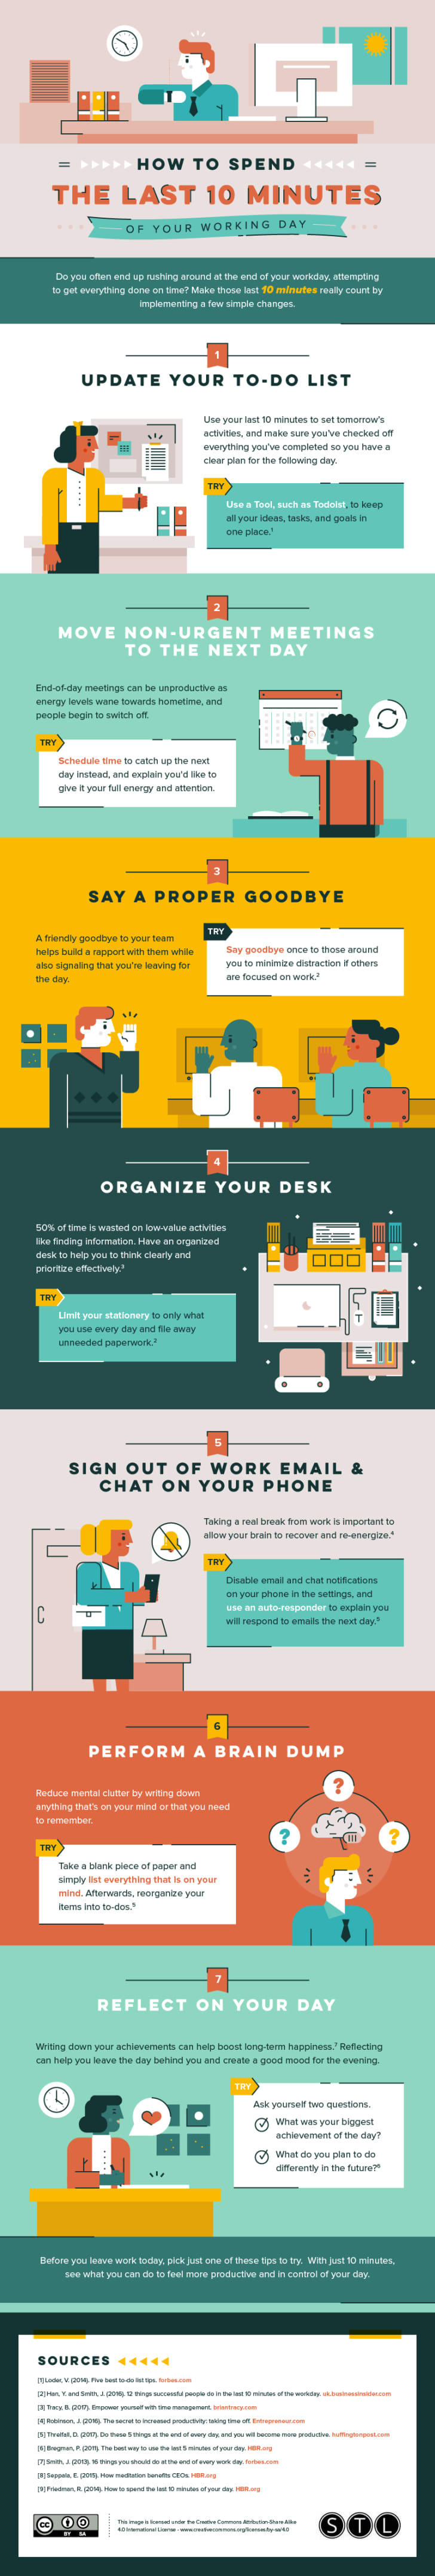 A colorful infographic about making the most of your end-of-work routine